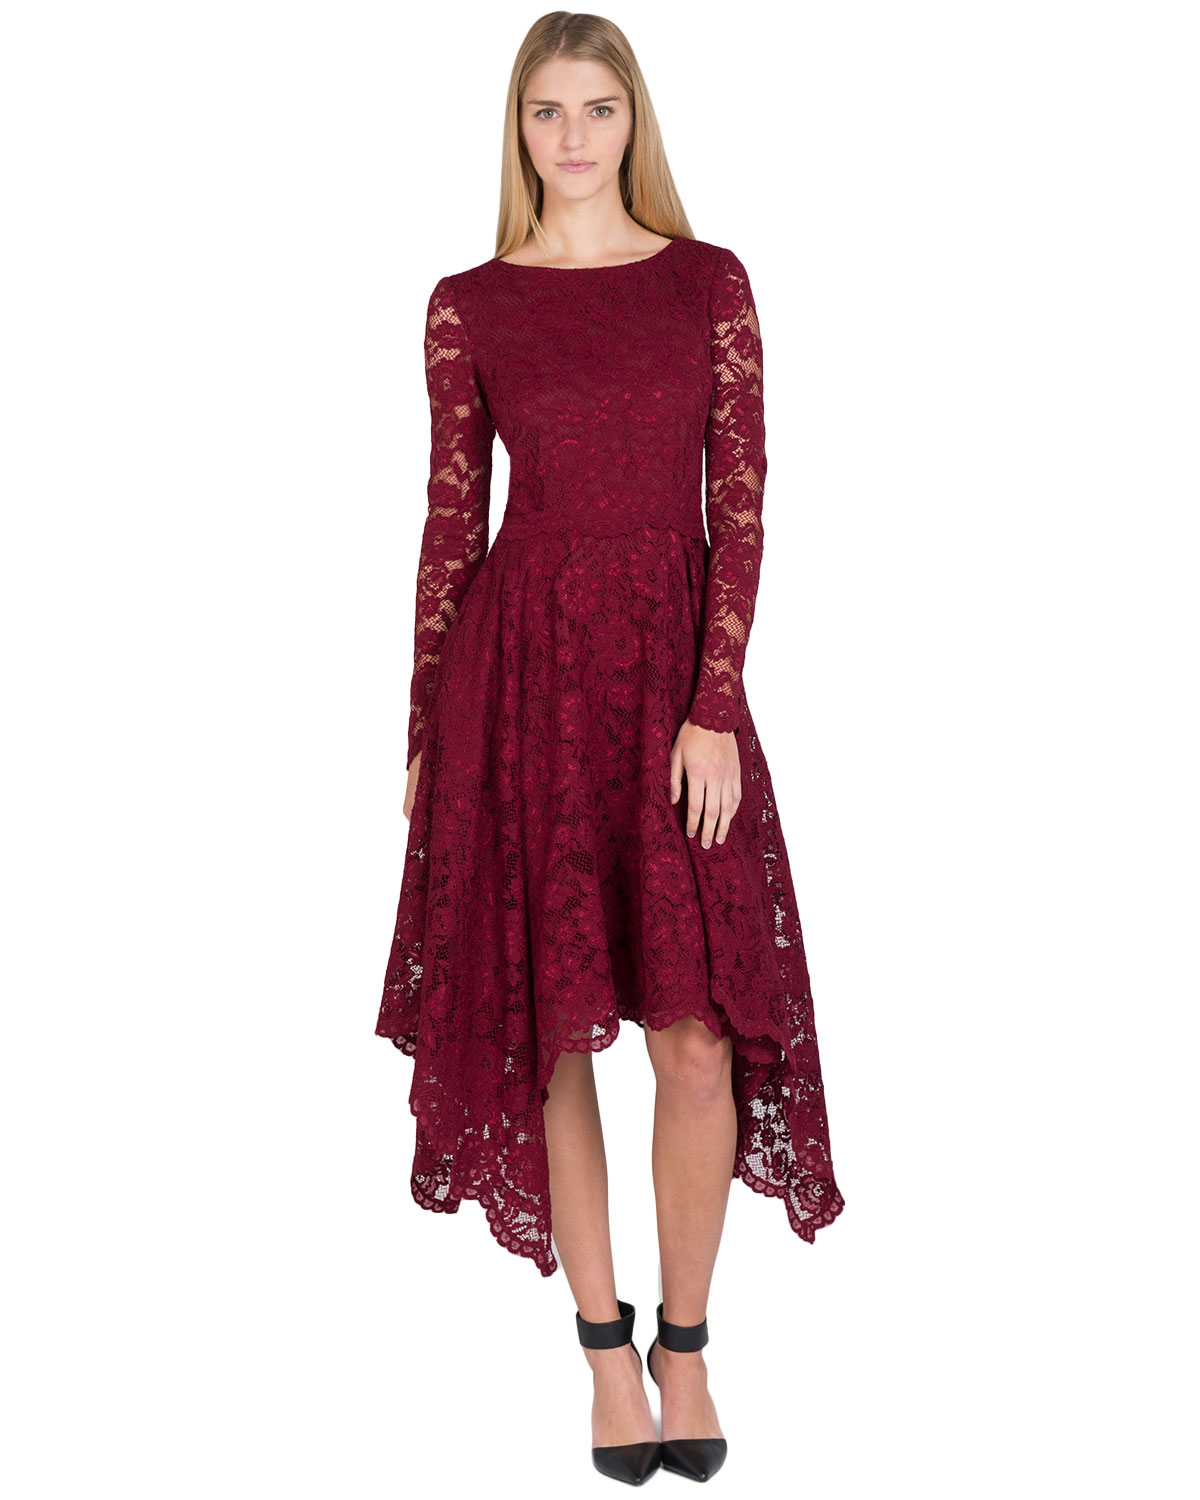 Shop for and buy handkerchief dress online at Macy's. Find handkerchief dress at Macy's.